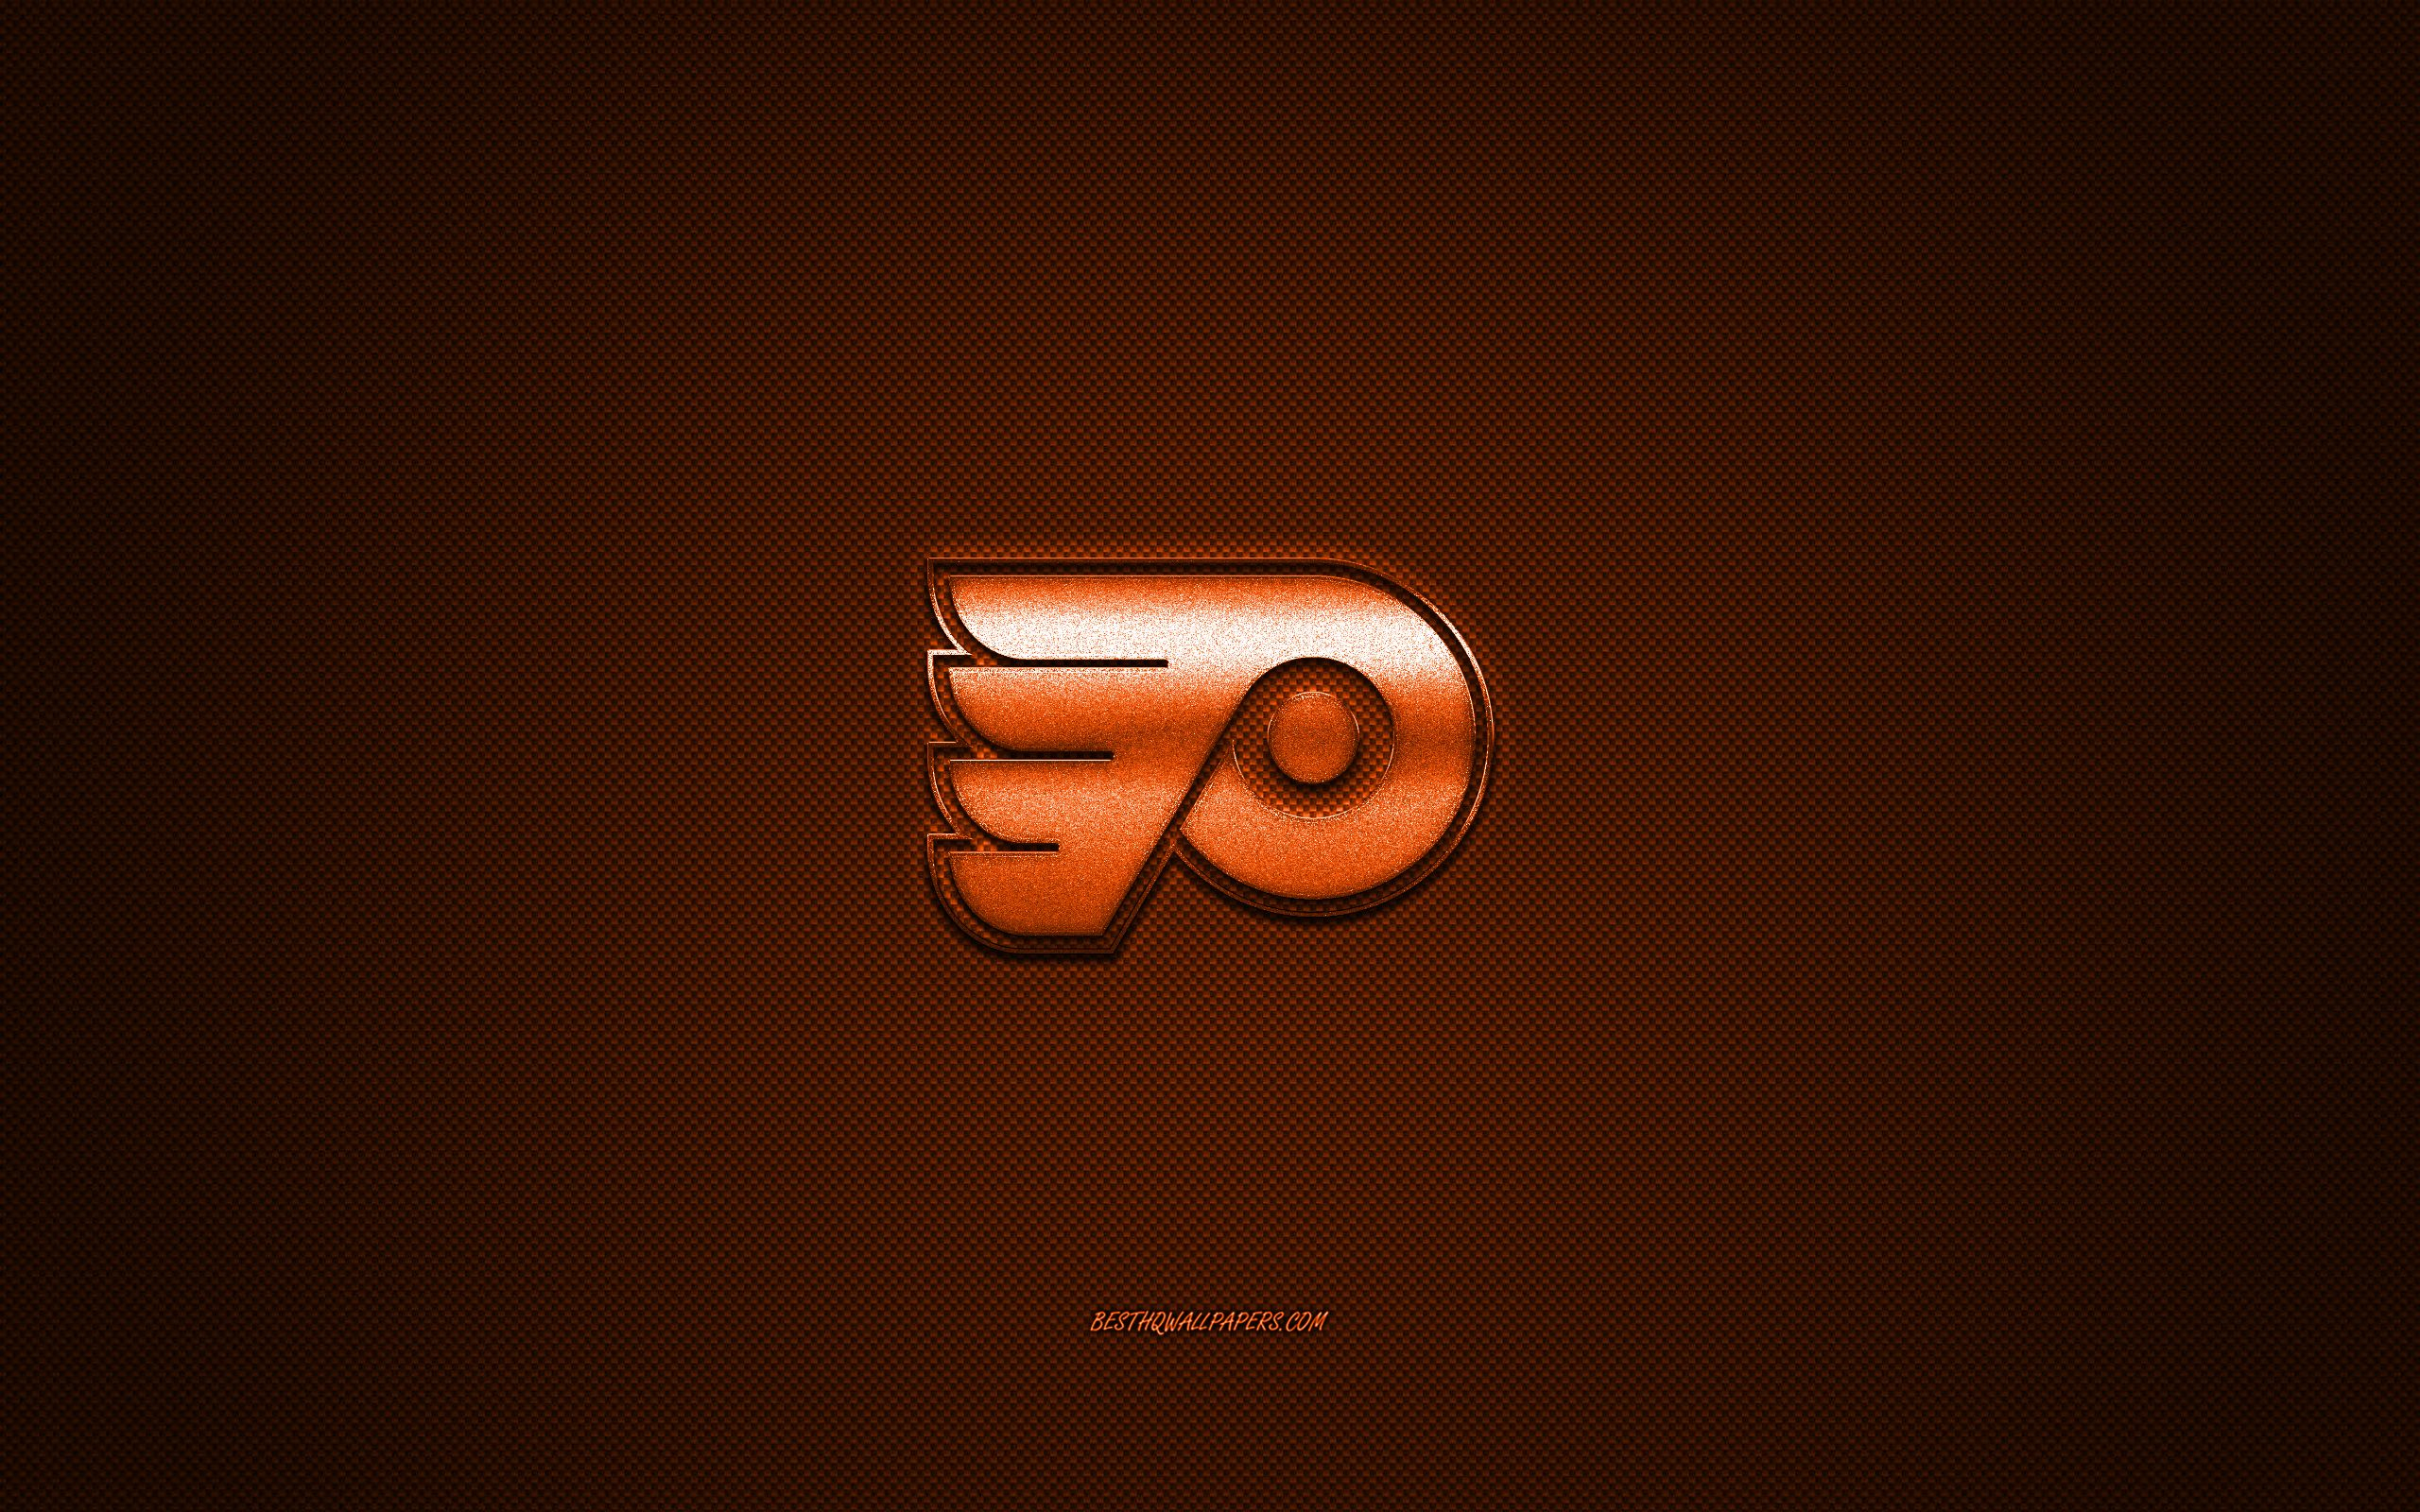 2560x1600 Download wallpapers Philadelphia Flyers, American hockey ...